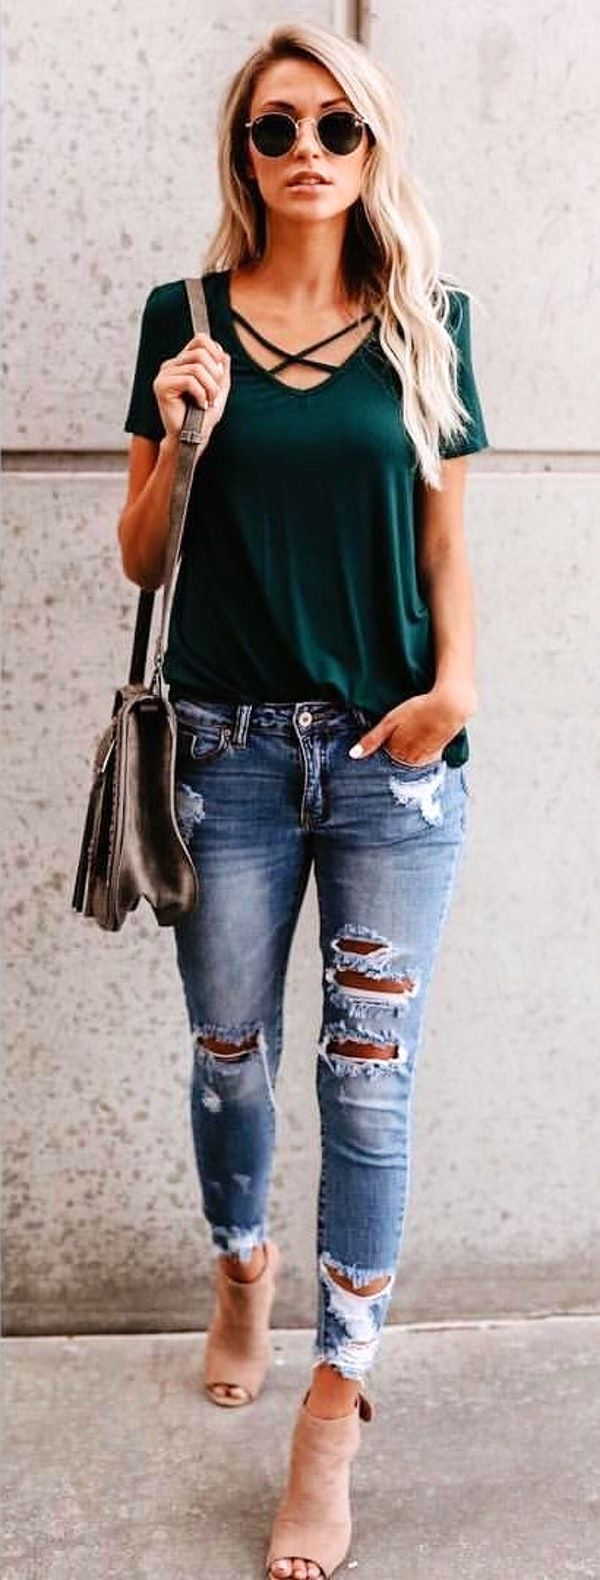 #fall #outfits  women's green shirt, gray leather crossbody bag and denim jeans